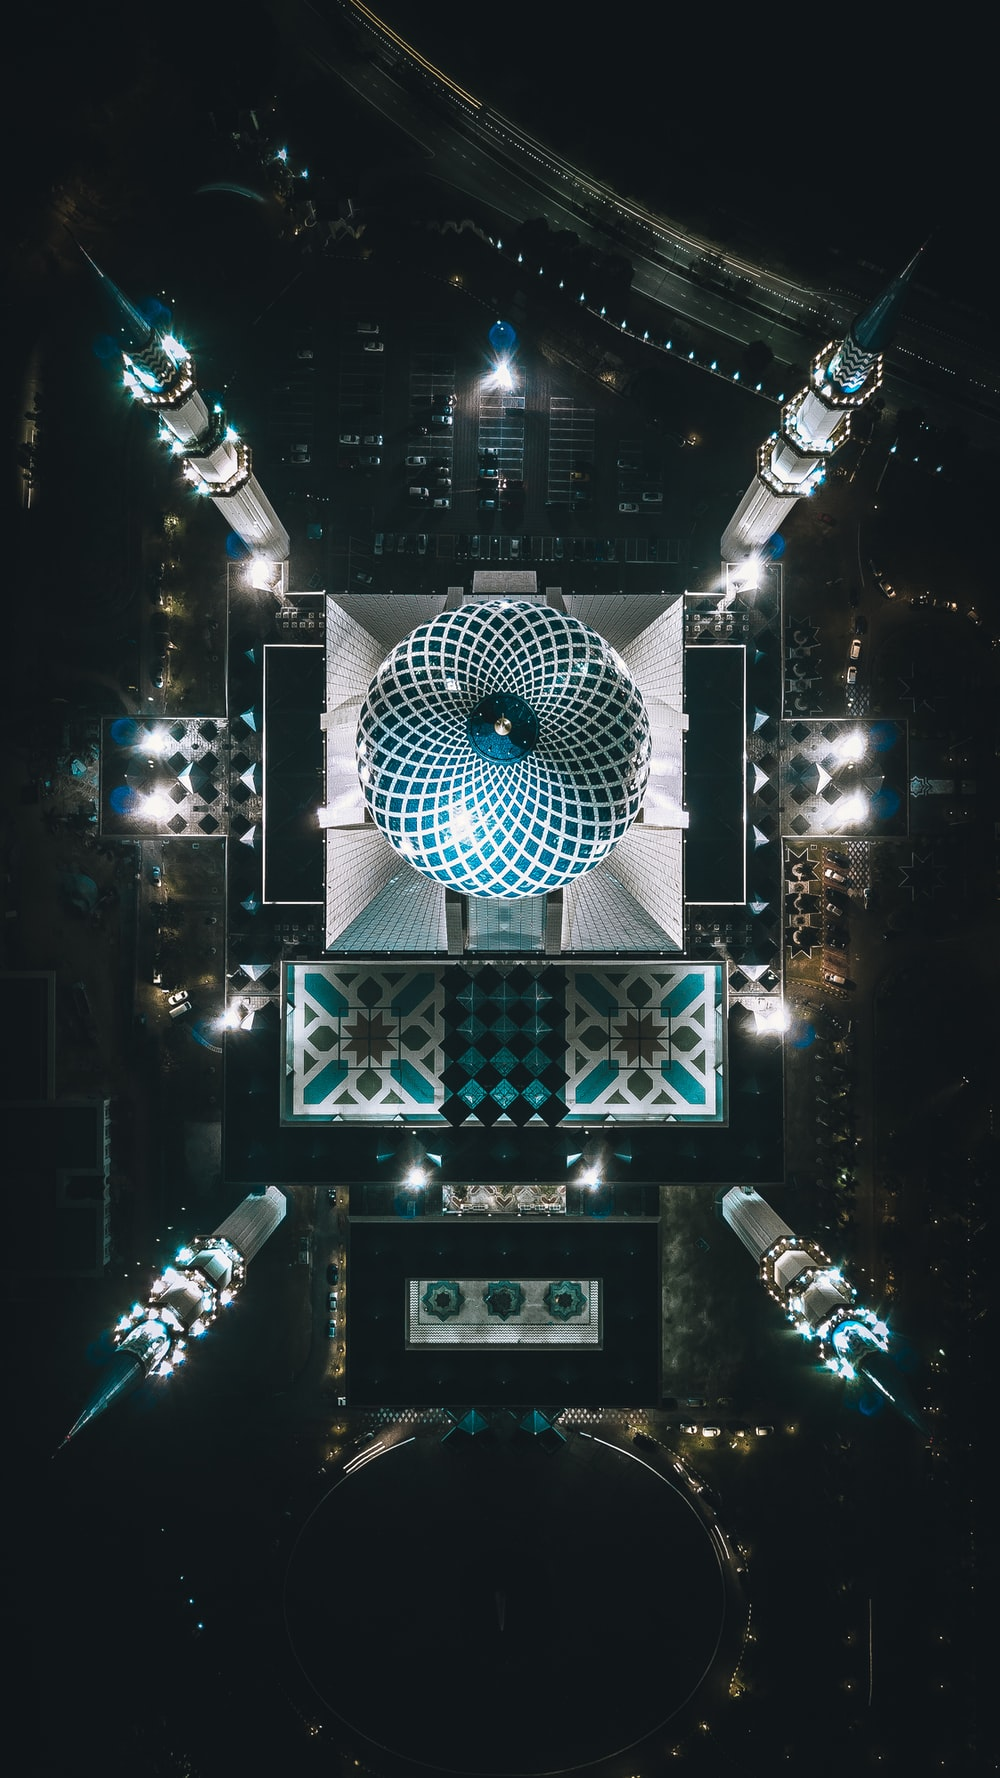 birds eye view of blue and white mosque